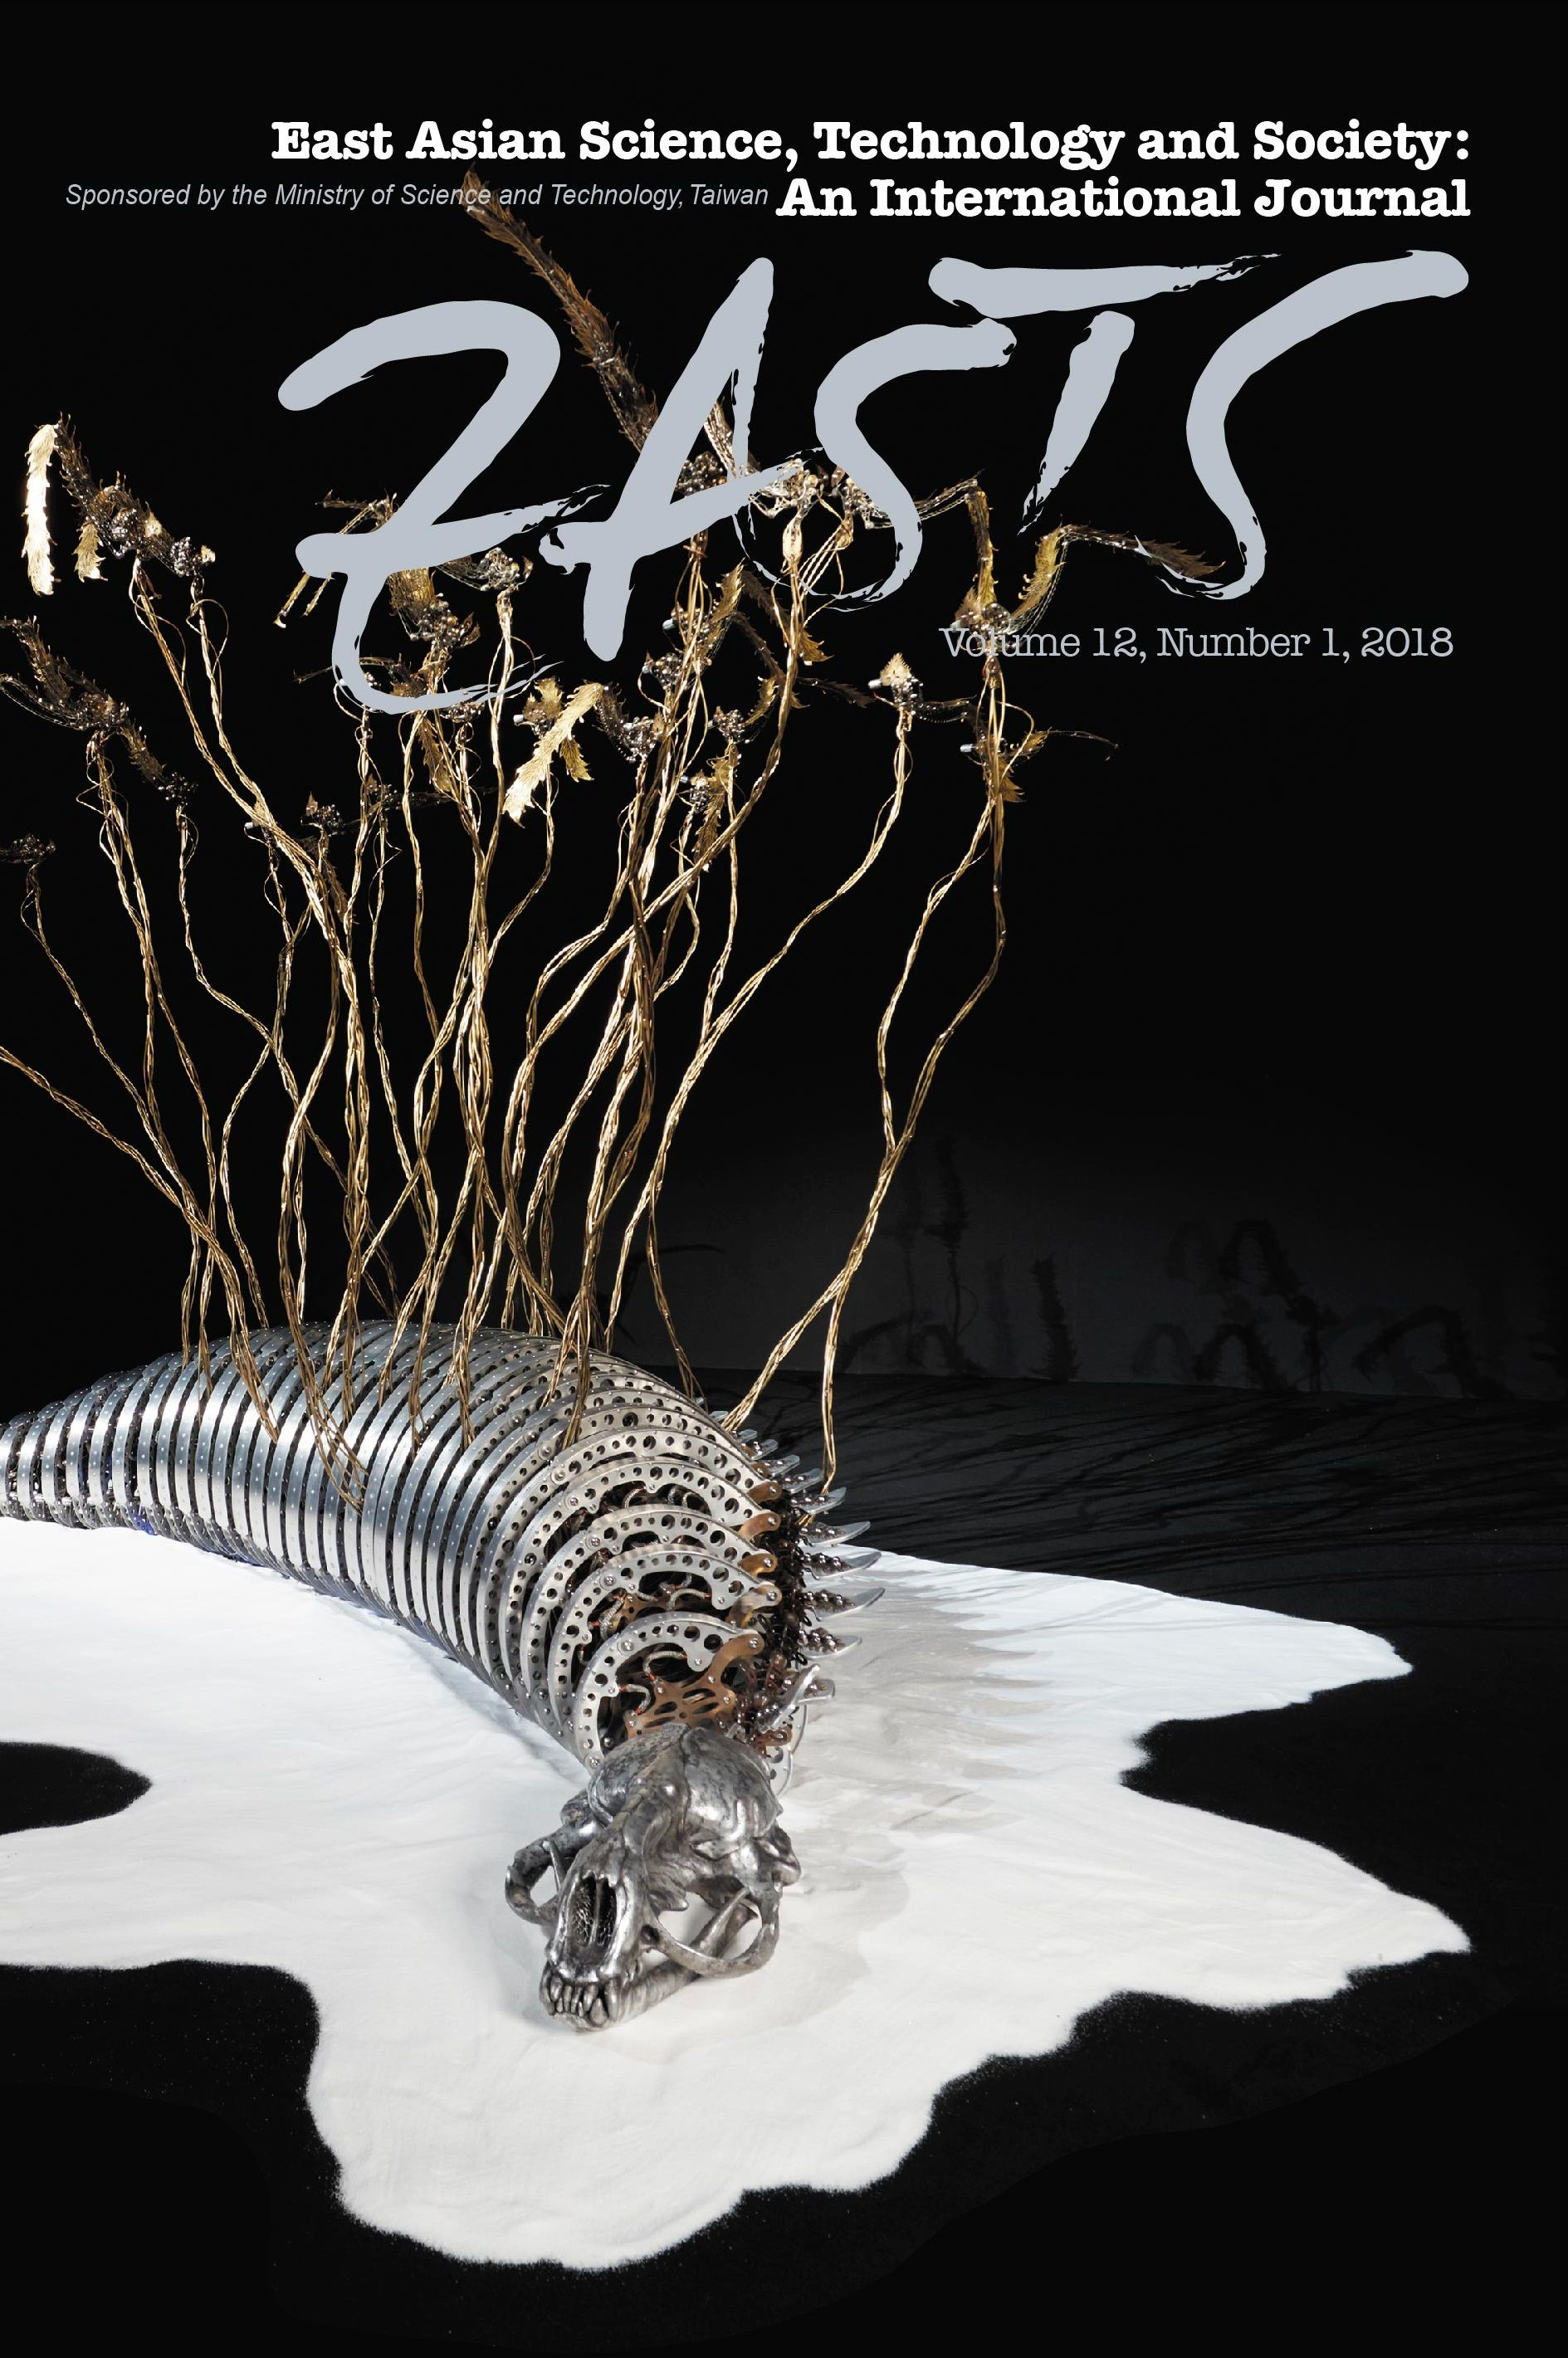 EASTS Cover 12.1